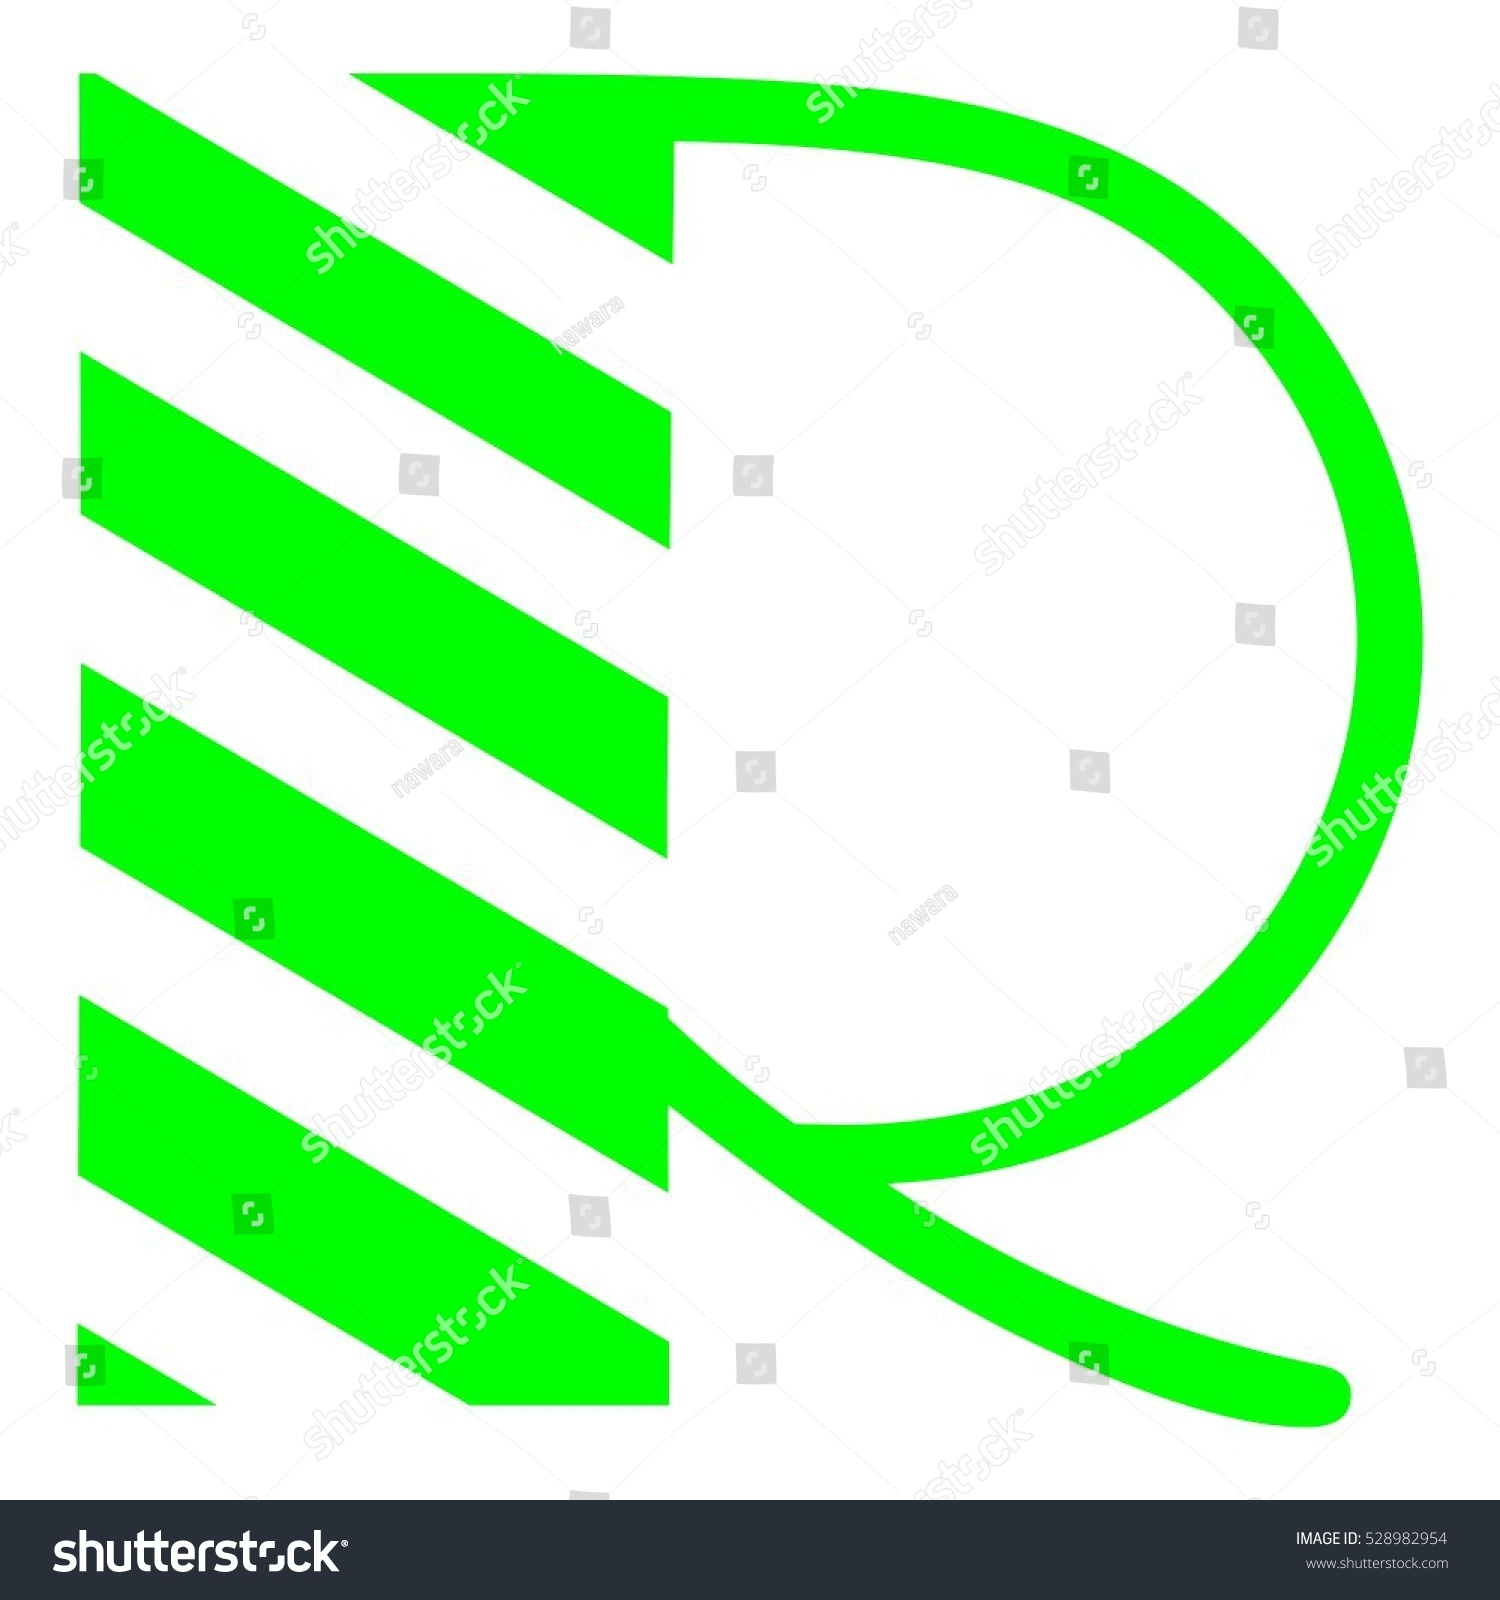 Letter r icon logo templates r stock vector 528982954 shutterstock the letter r and icon logo templates r initial vector design element for download spiritdancerdesigns Image collections